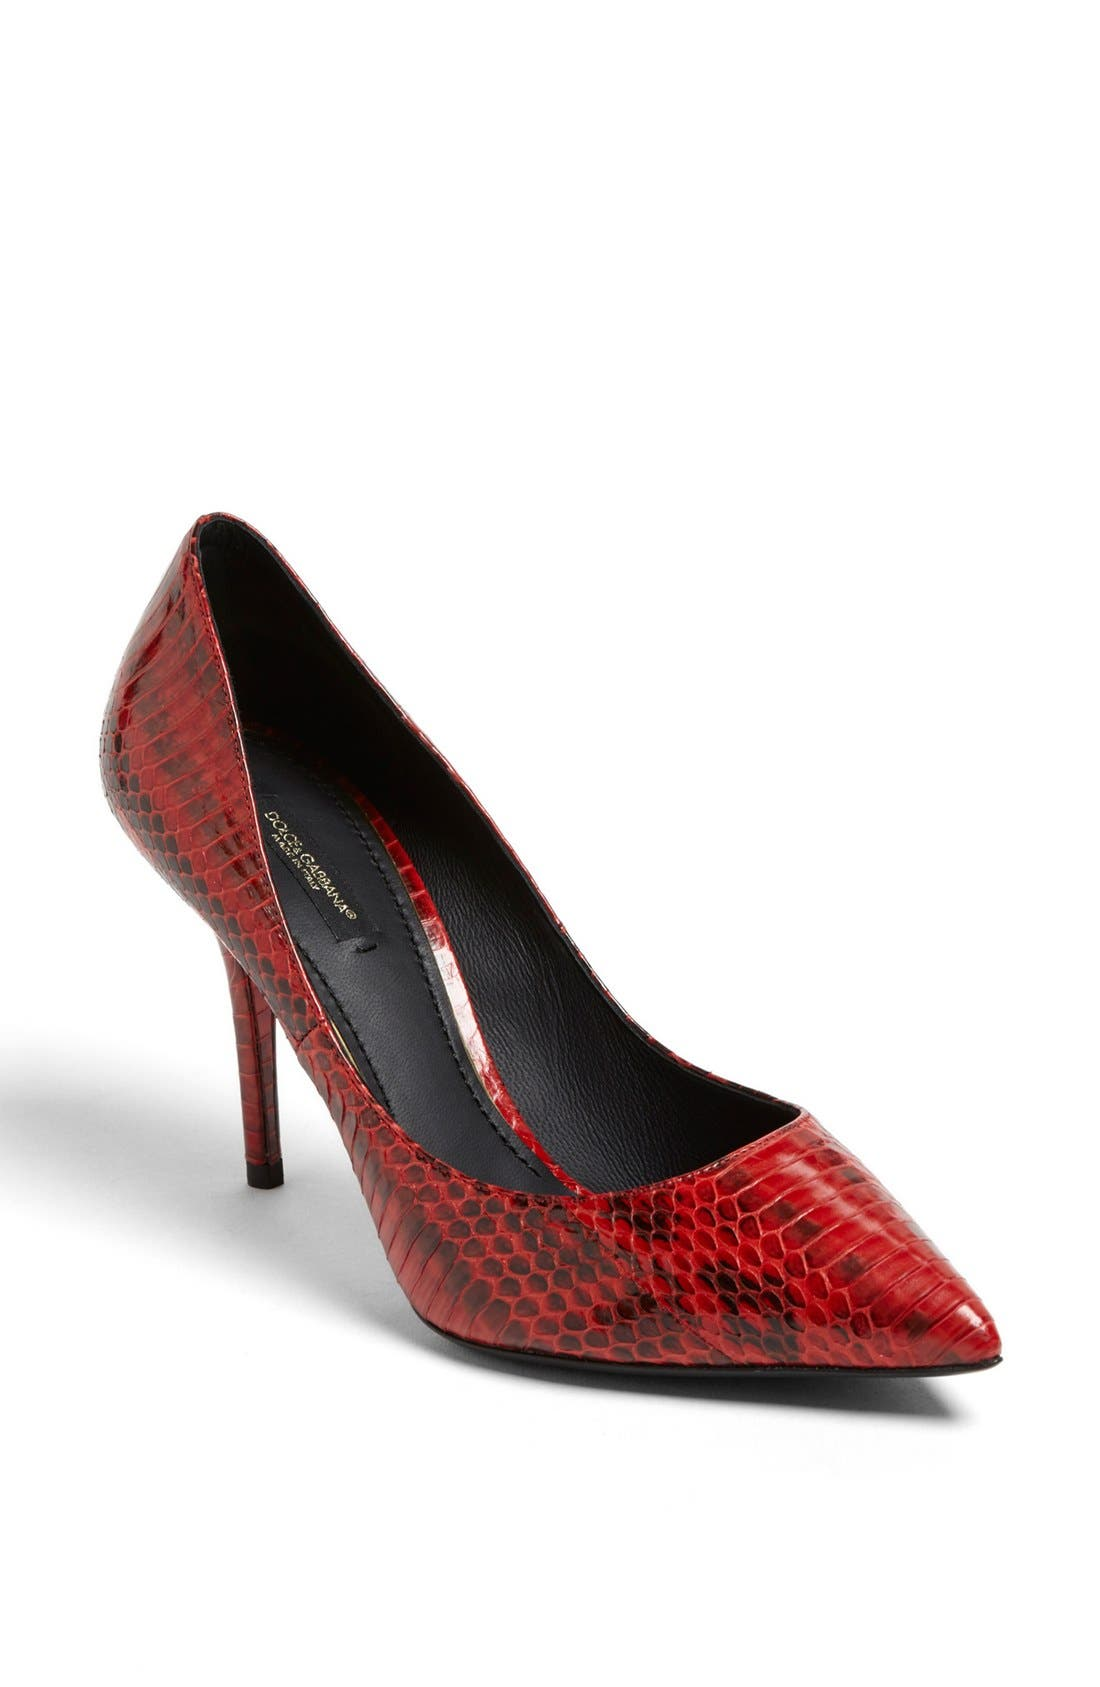 Alternate Image 1 Selected - Dolce&Gabbana 'Elaphe' Snakeskin Pump